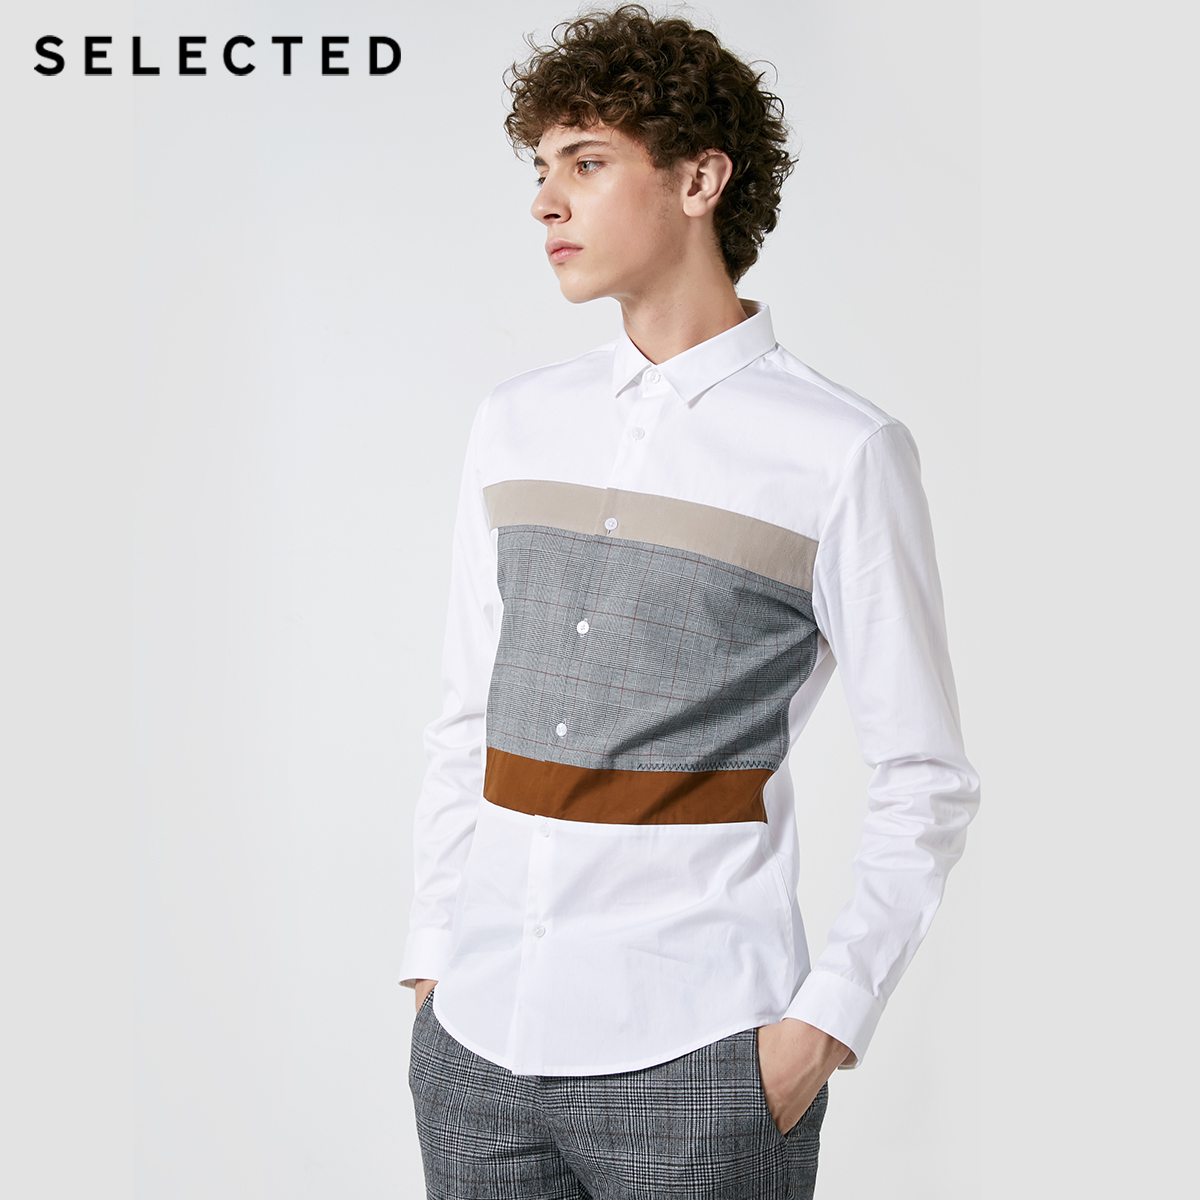 SELECTED New Men's Cotton Lattice Stitching Business Leisure Long Sleeve Shirt S | 418405548